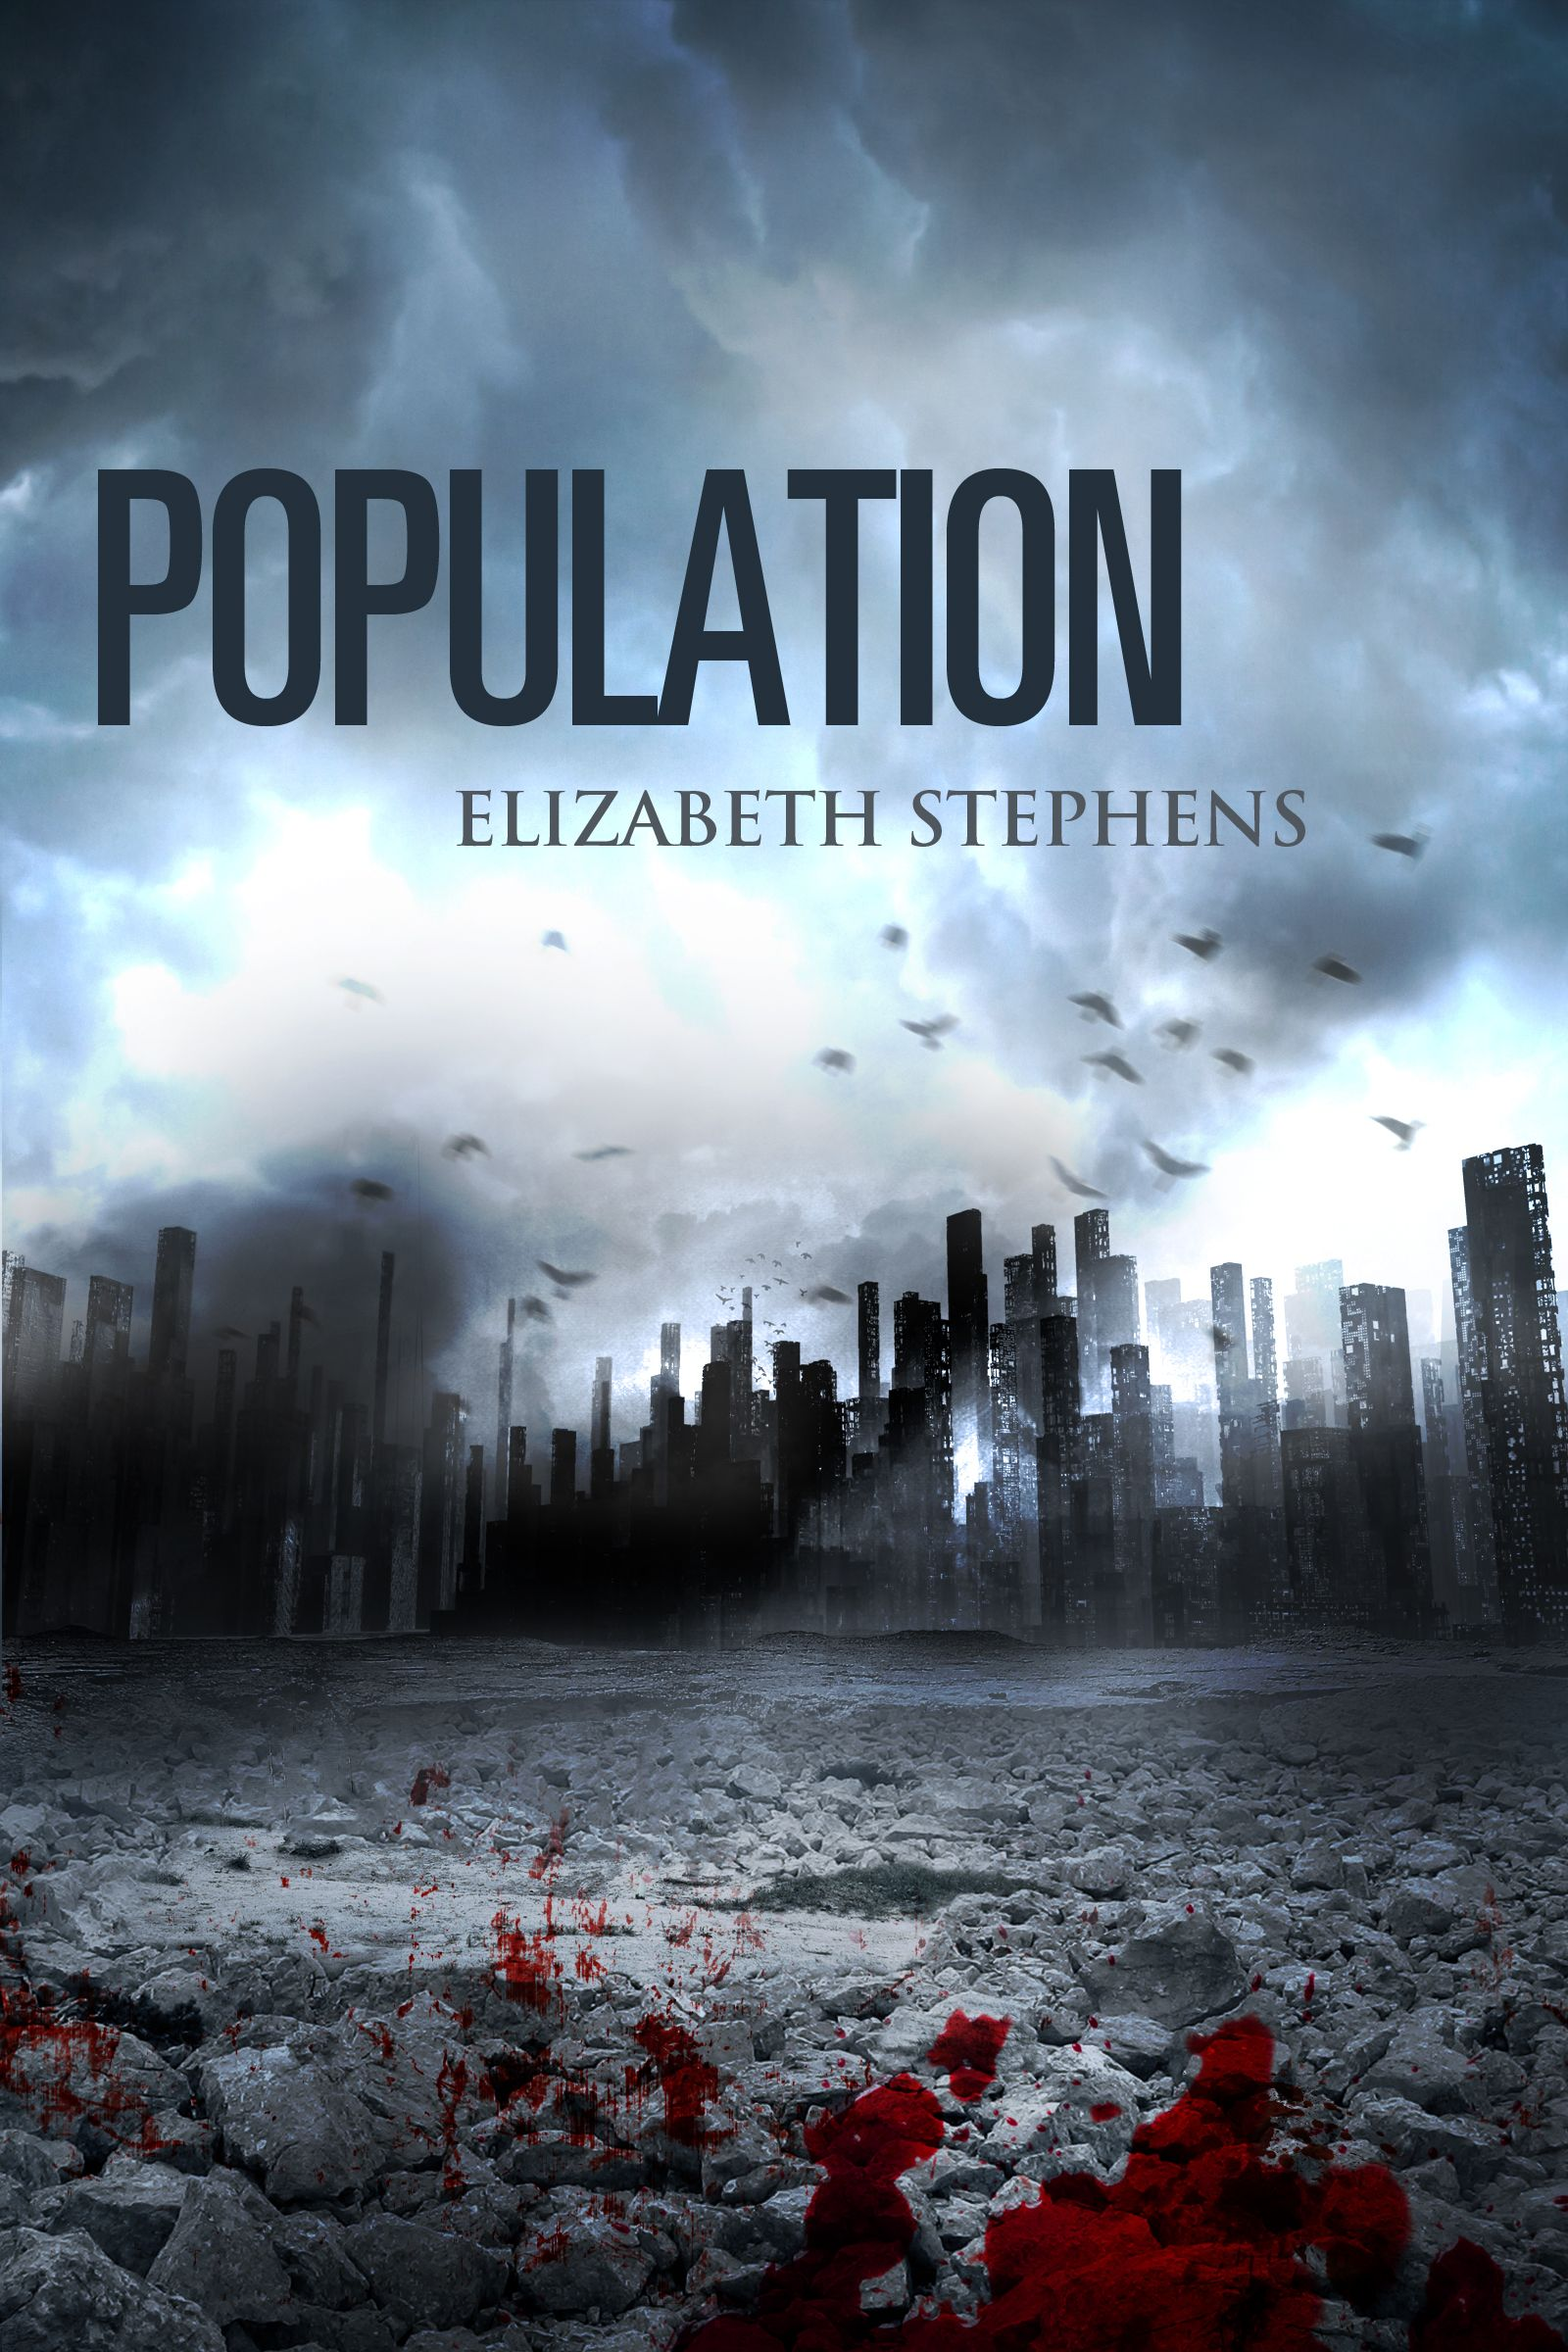 Population (Ellie Stephens).